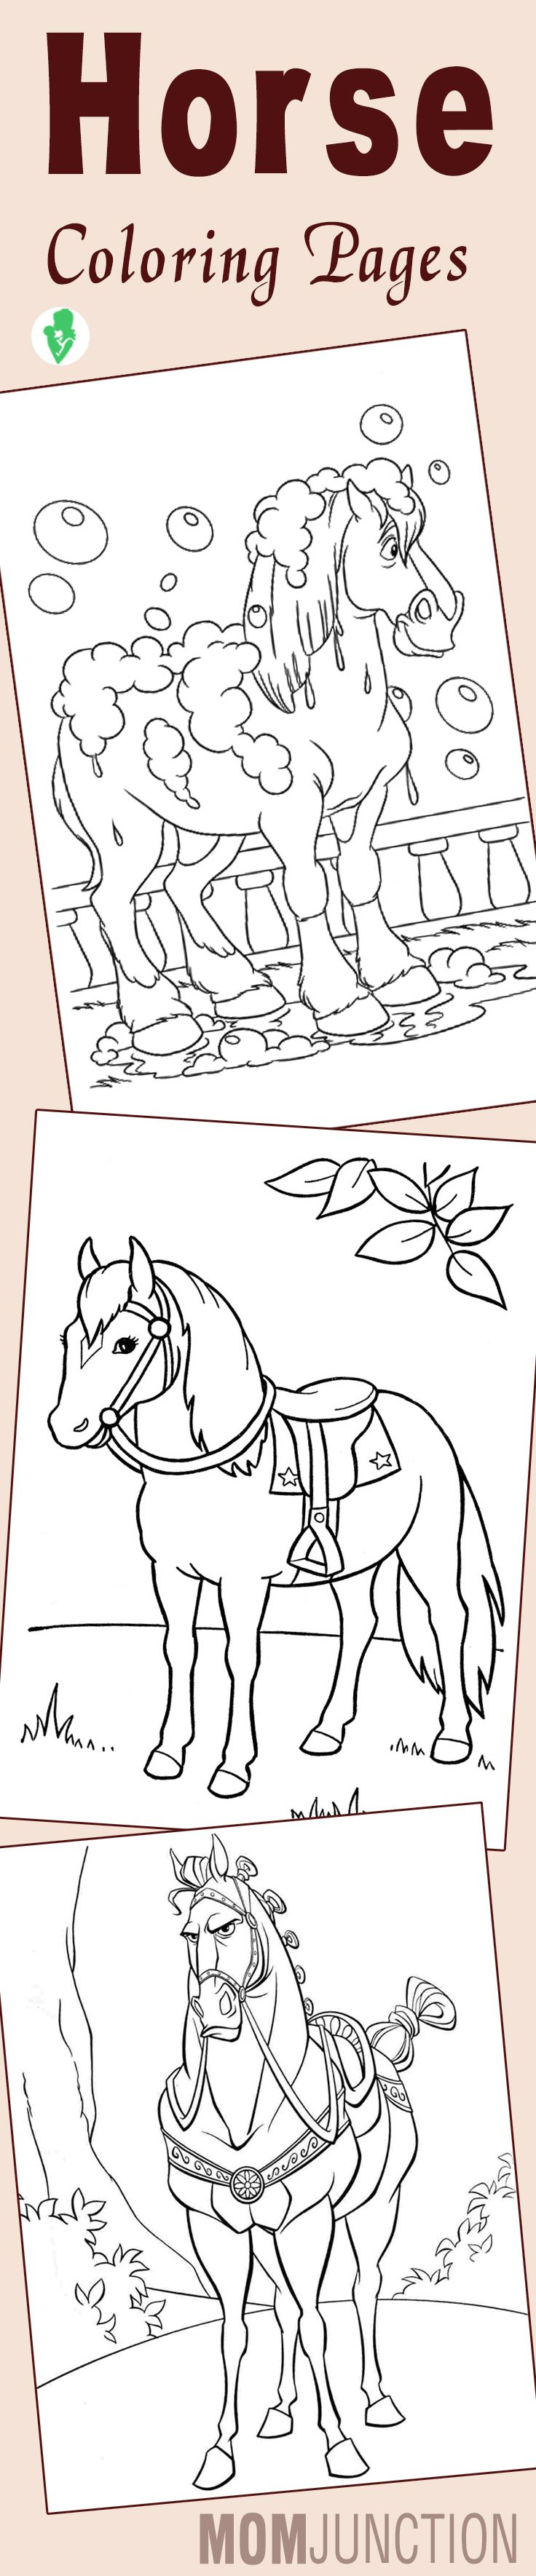 Coloring pages 6 year olds - 25 Best Horse Coloring Pages Your Toddler Will Love To Color